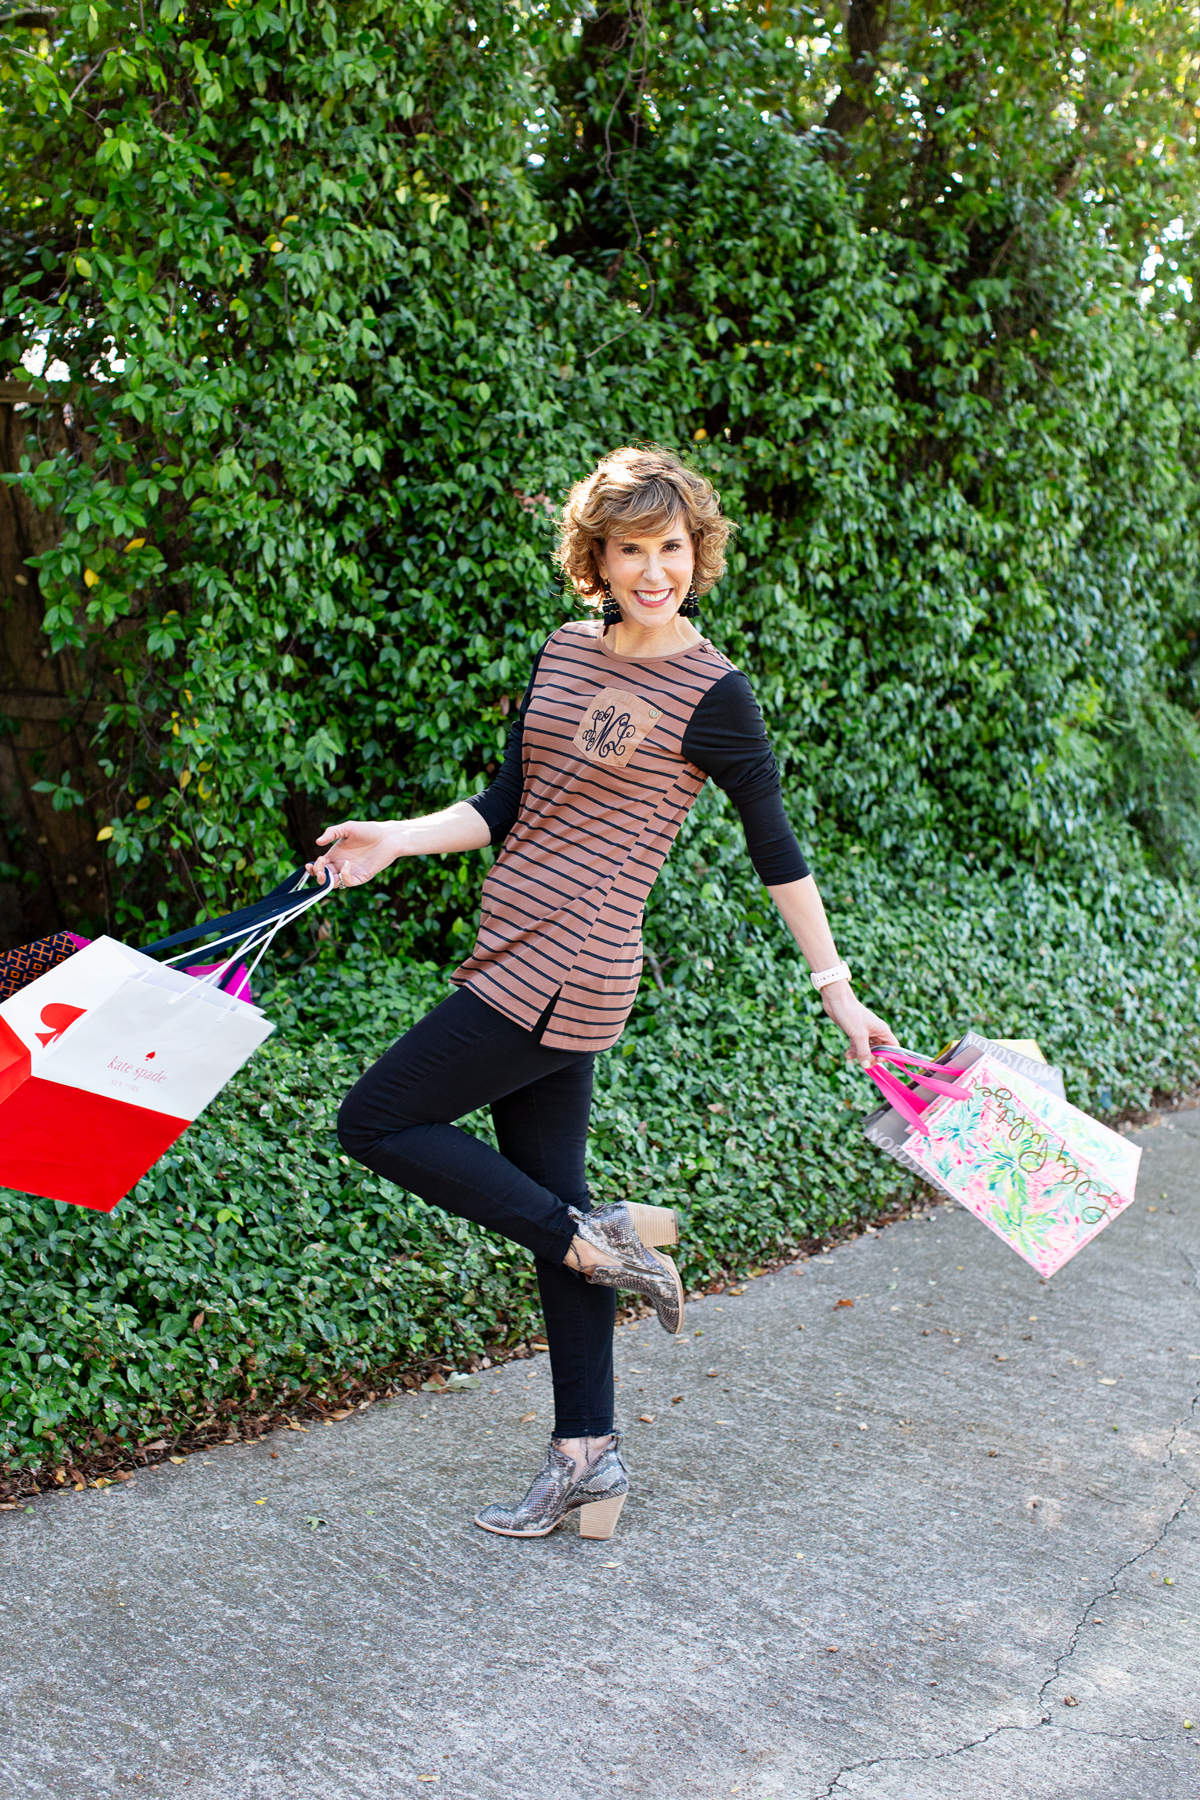 woman carrying multiple shopping bags and spinning around